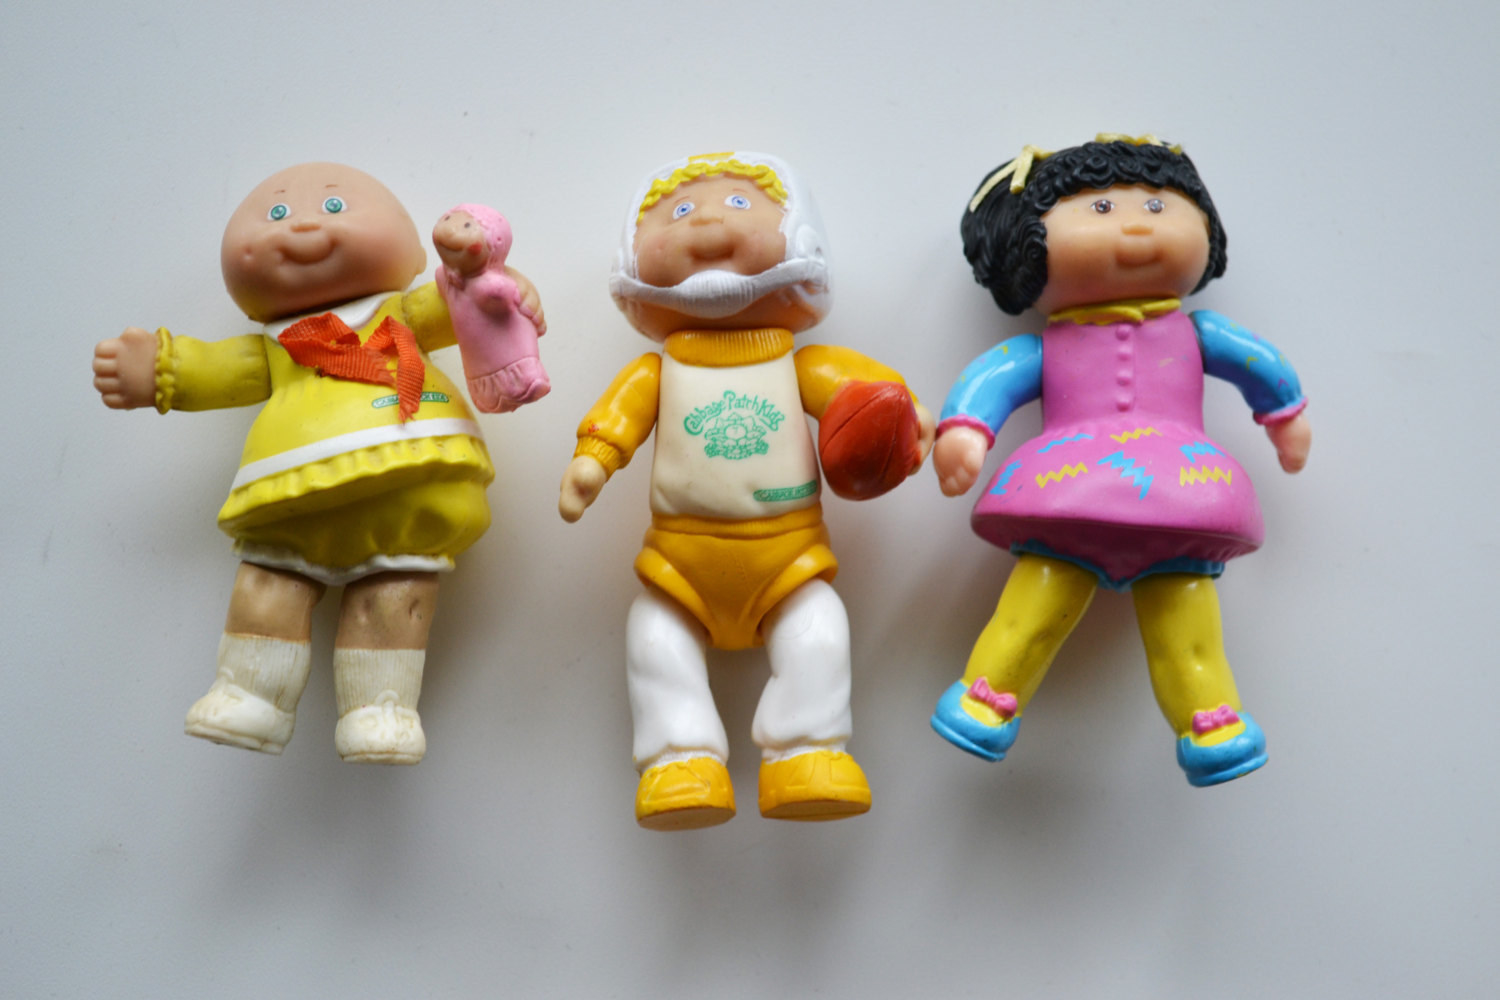 25 Forgotten '80s Toys That Gen-Xers And Old Millennials Once Played With